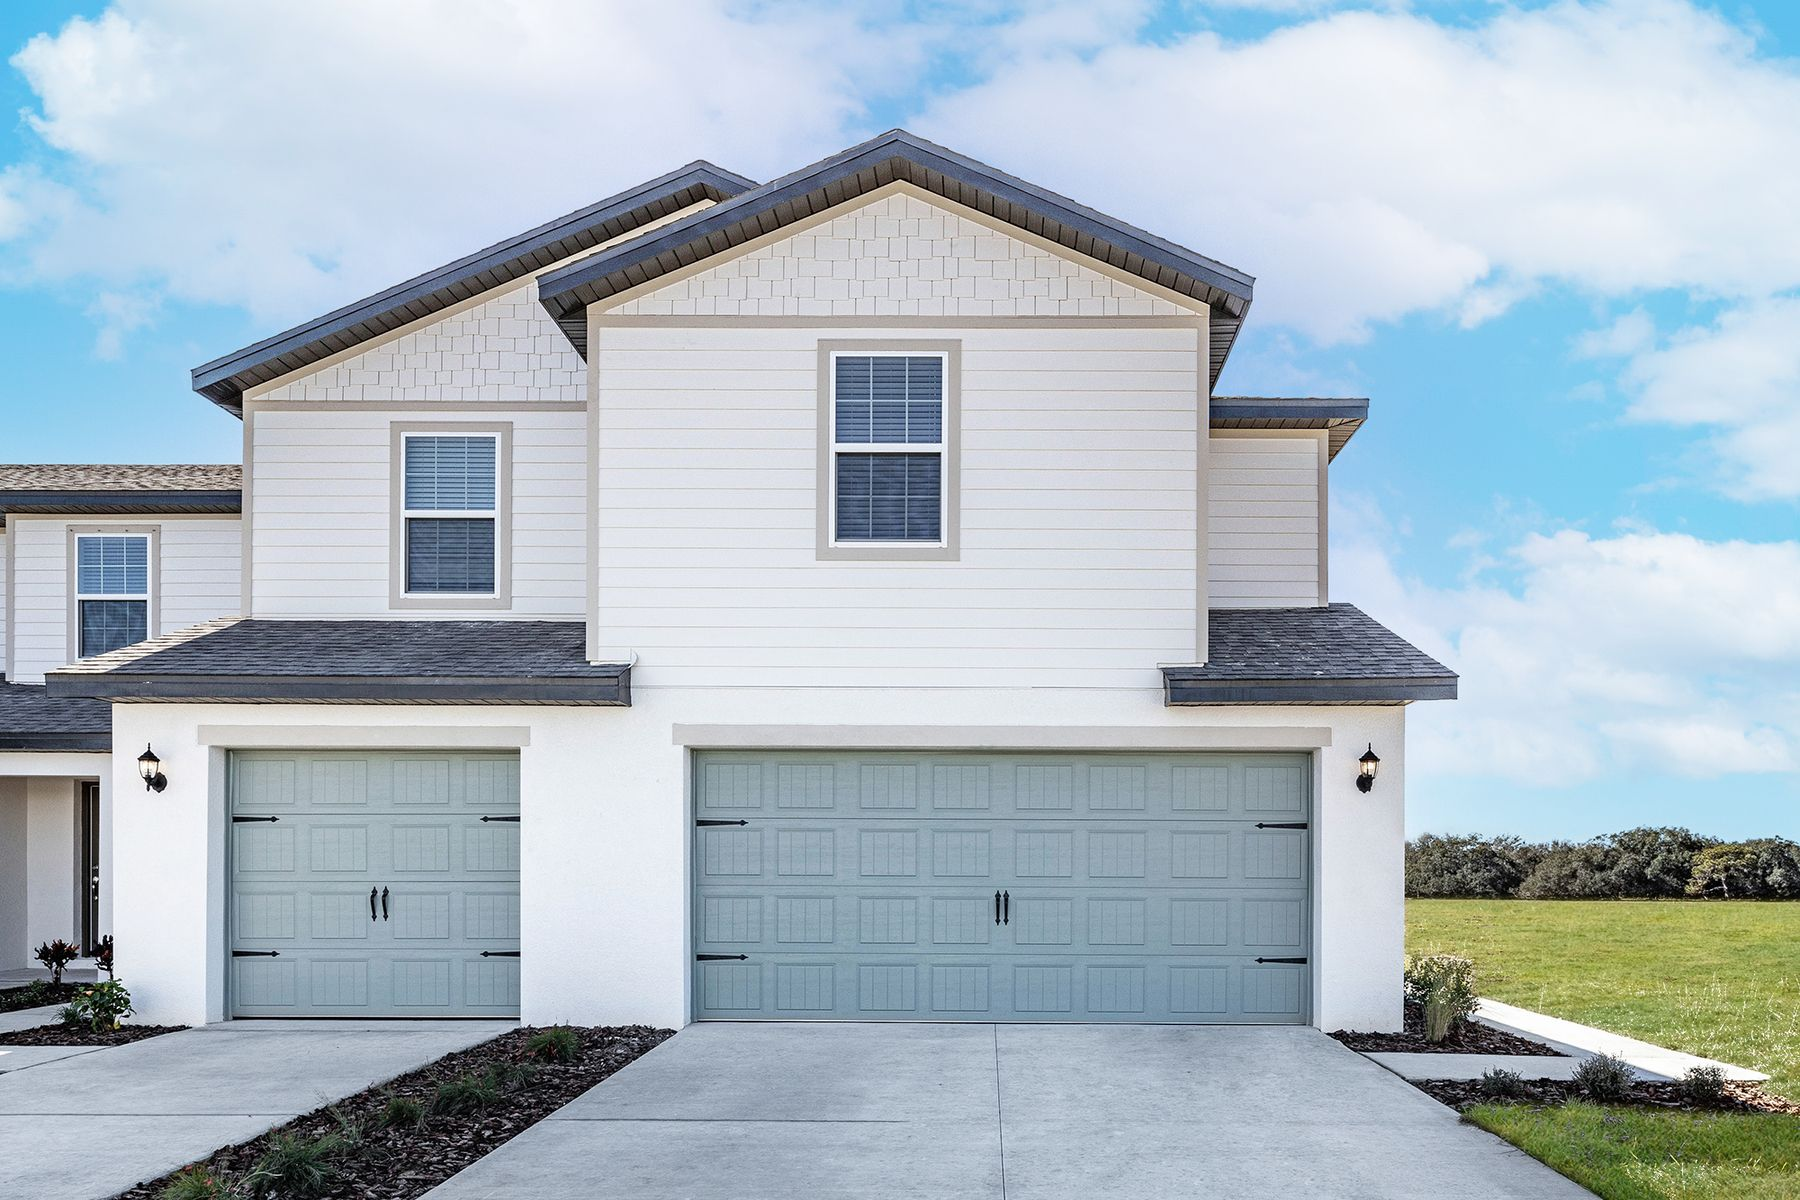 LGI Homes at Hamlets of Tavares:Get excited to transform this beautiful home into your very own